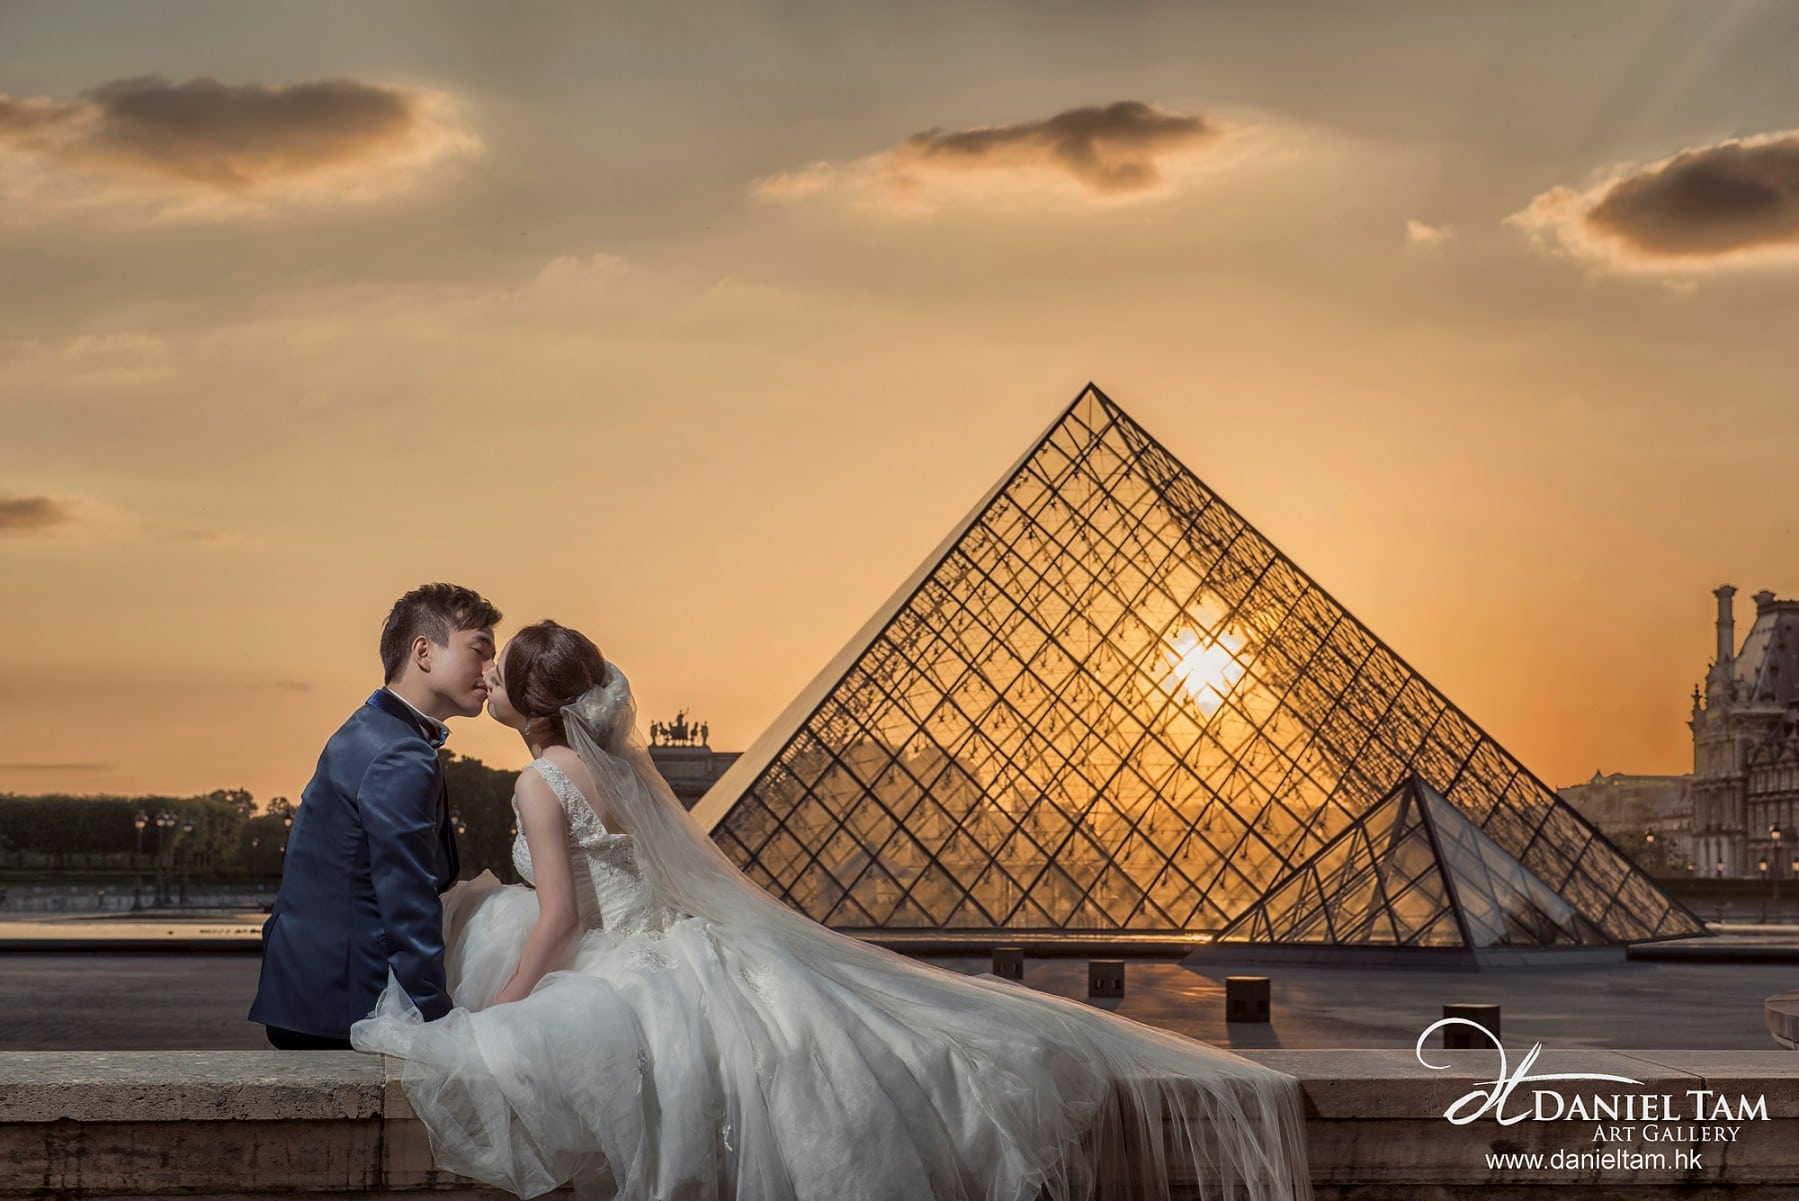 Paris, city of love [prewedding]